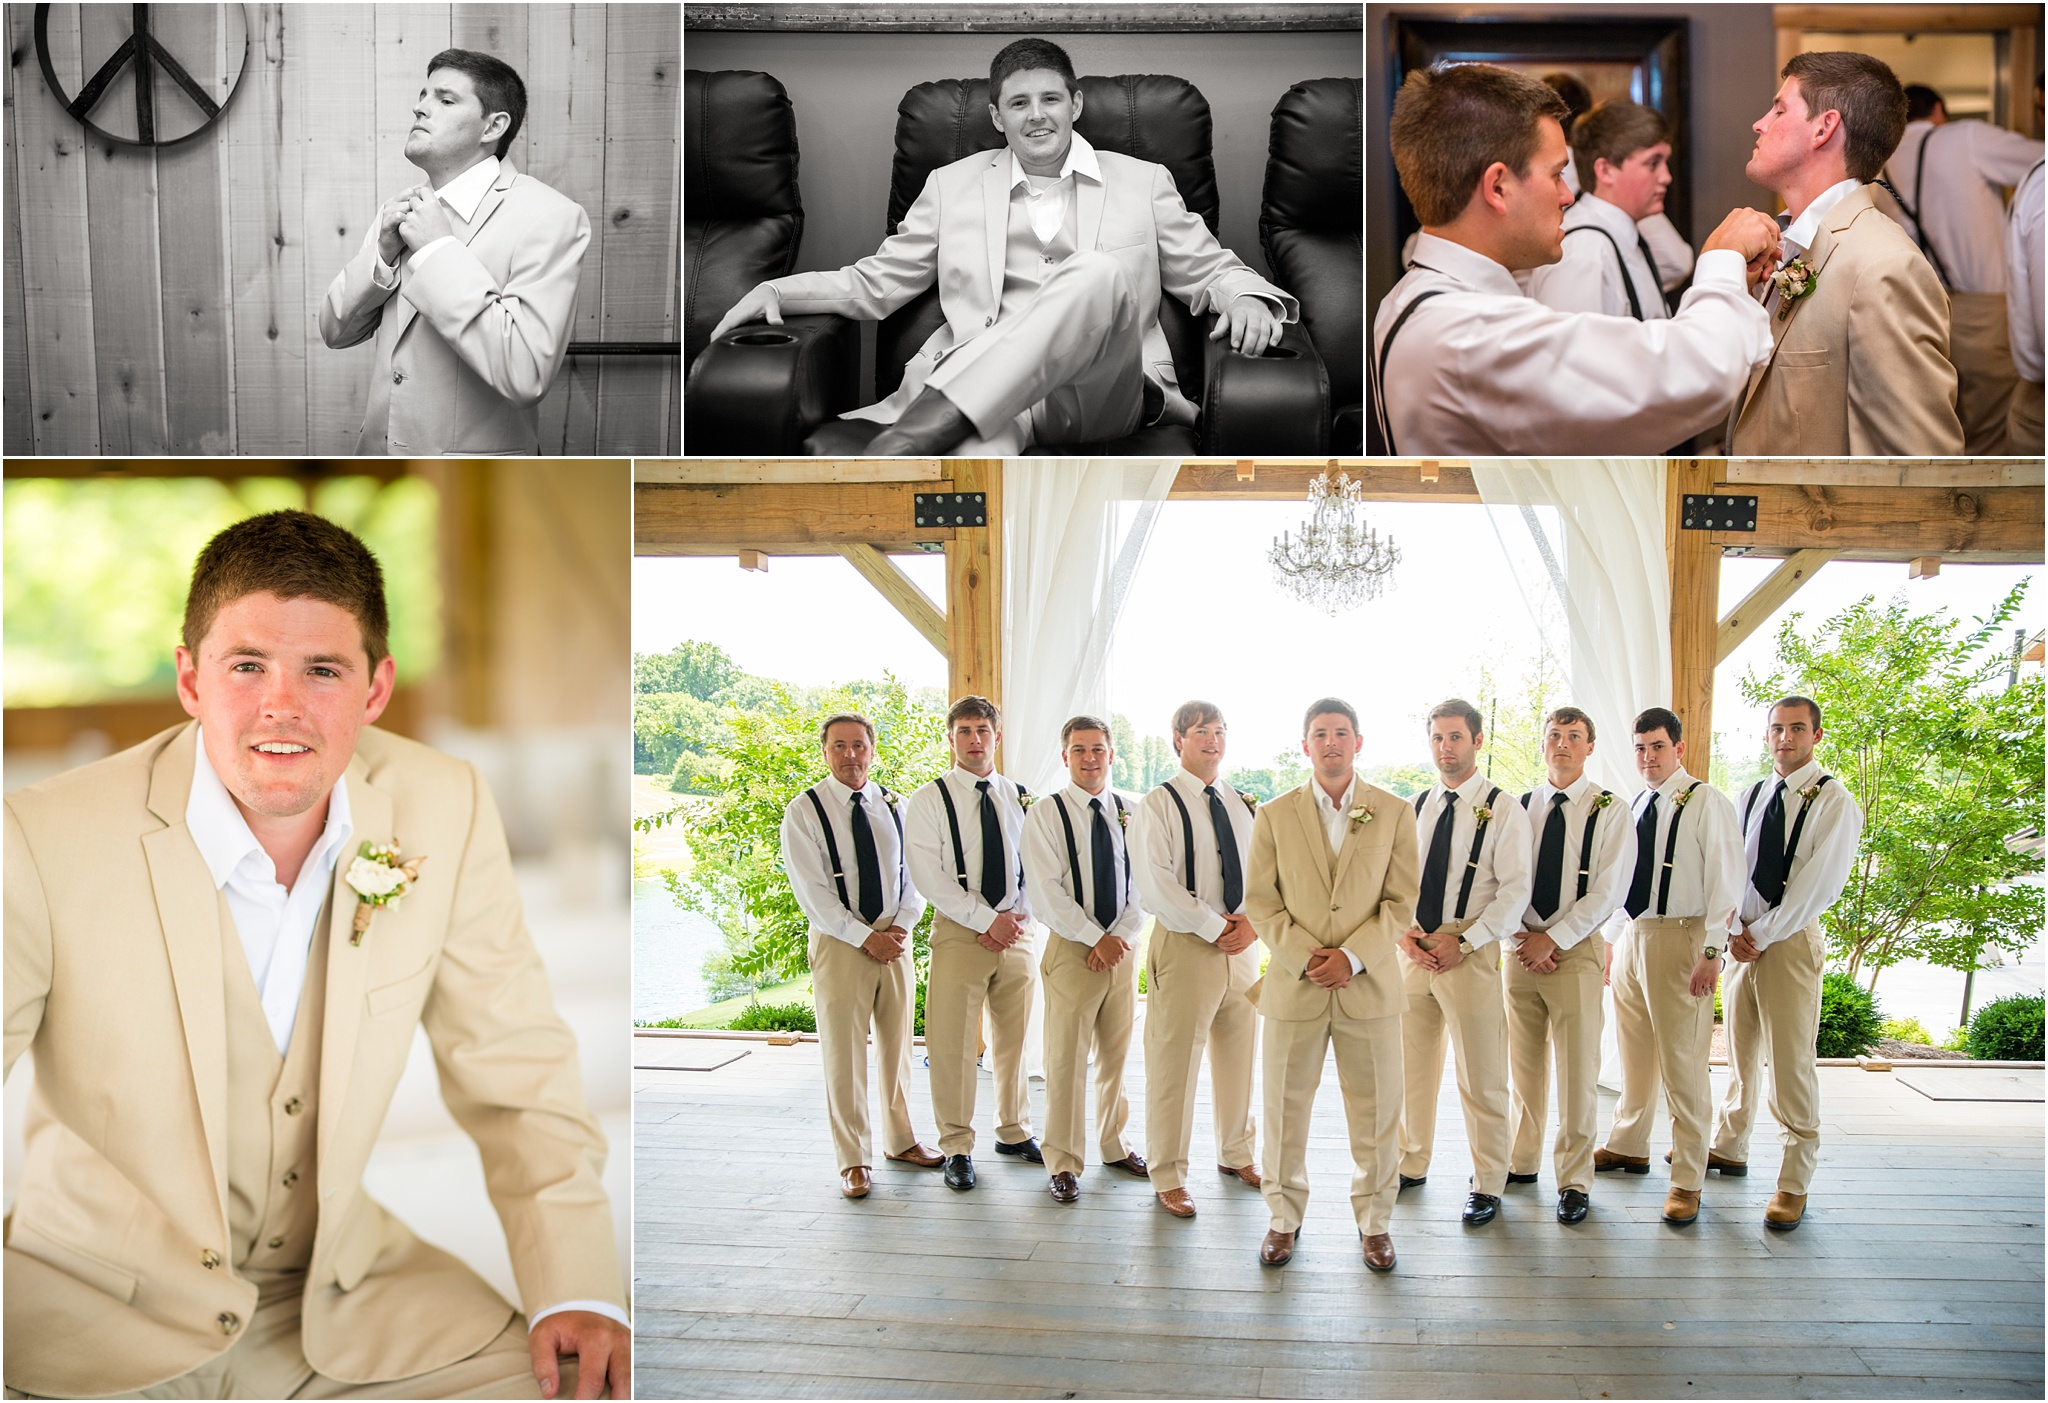 Greg Smit Photography Nashville wedding photographer Mint Springs Farm 2